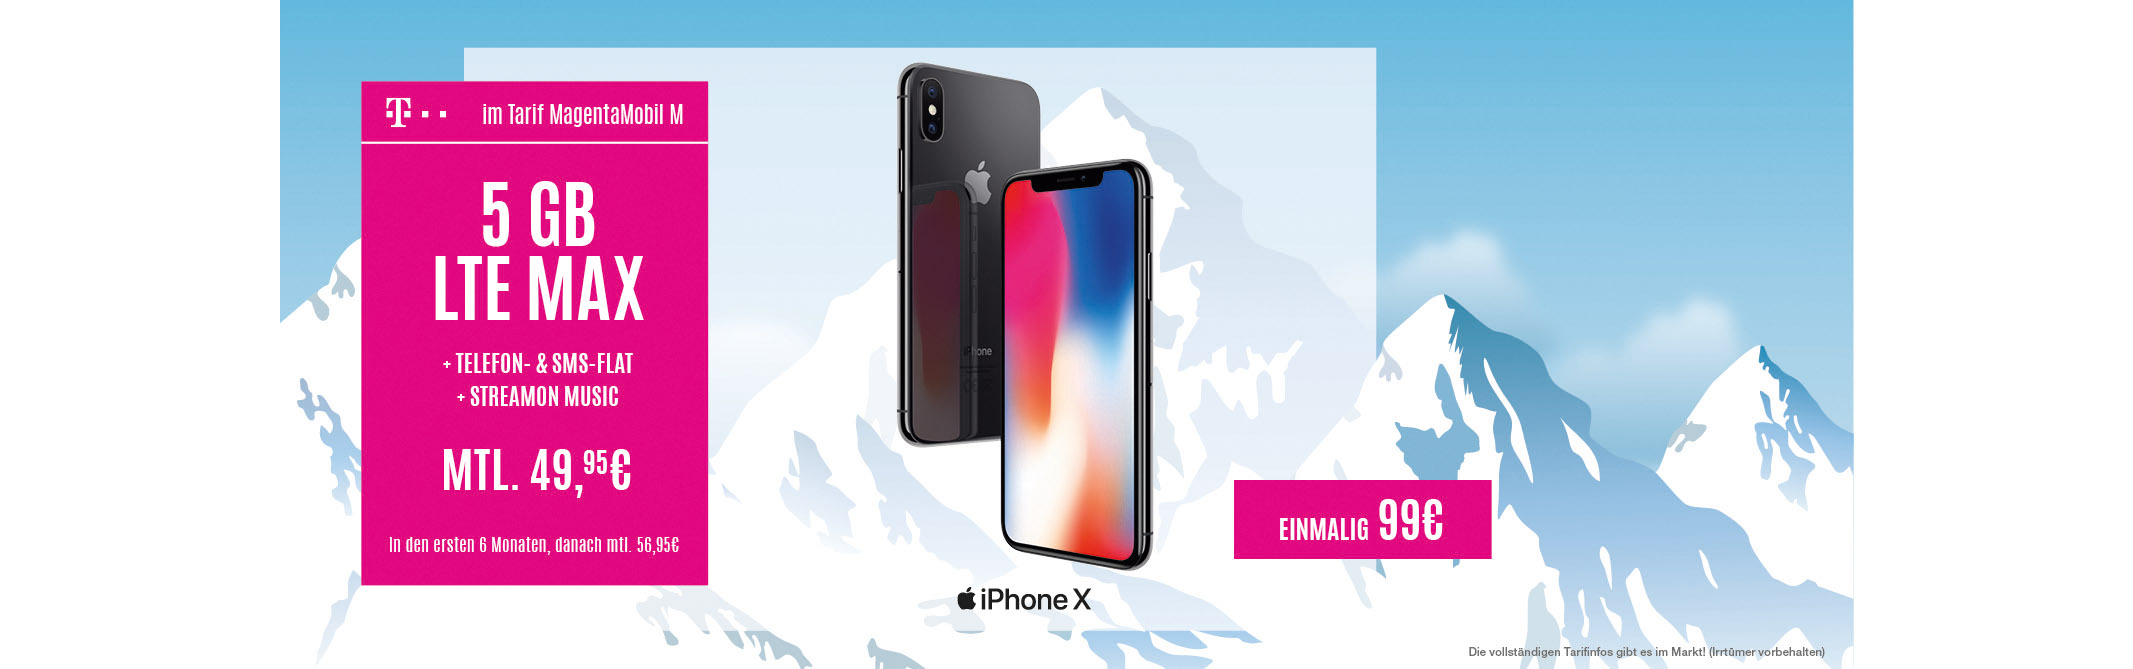 iPhone X ab 99€ bei EP:Deuber